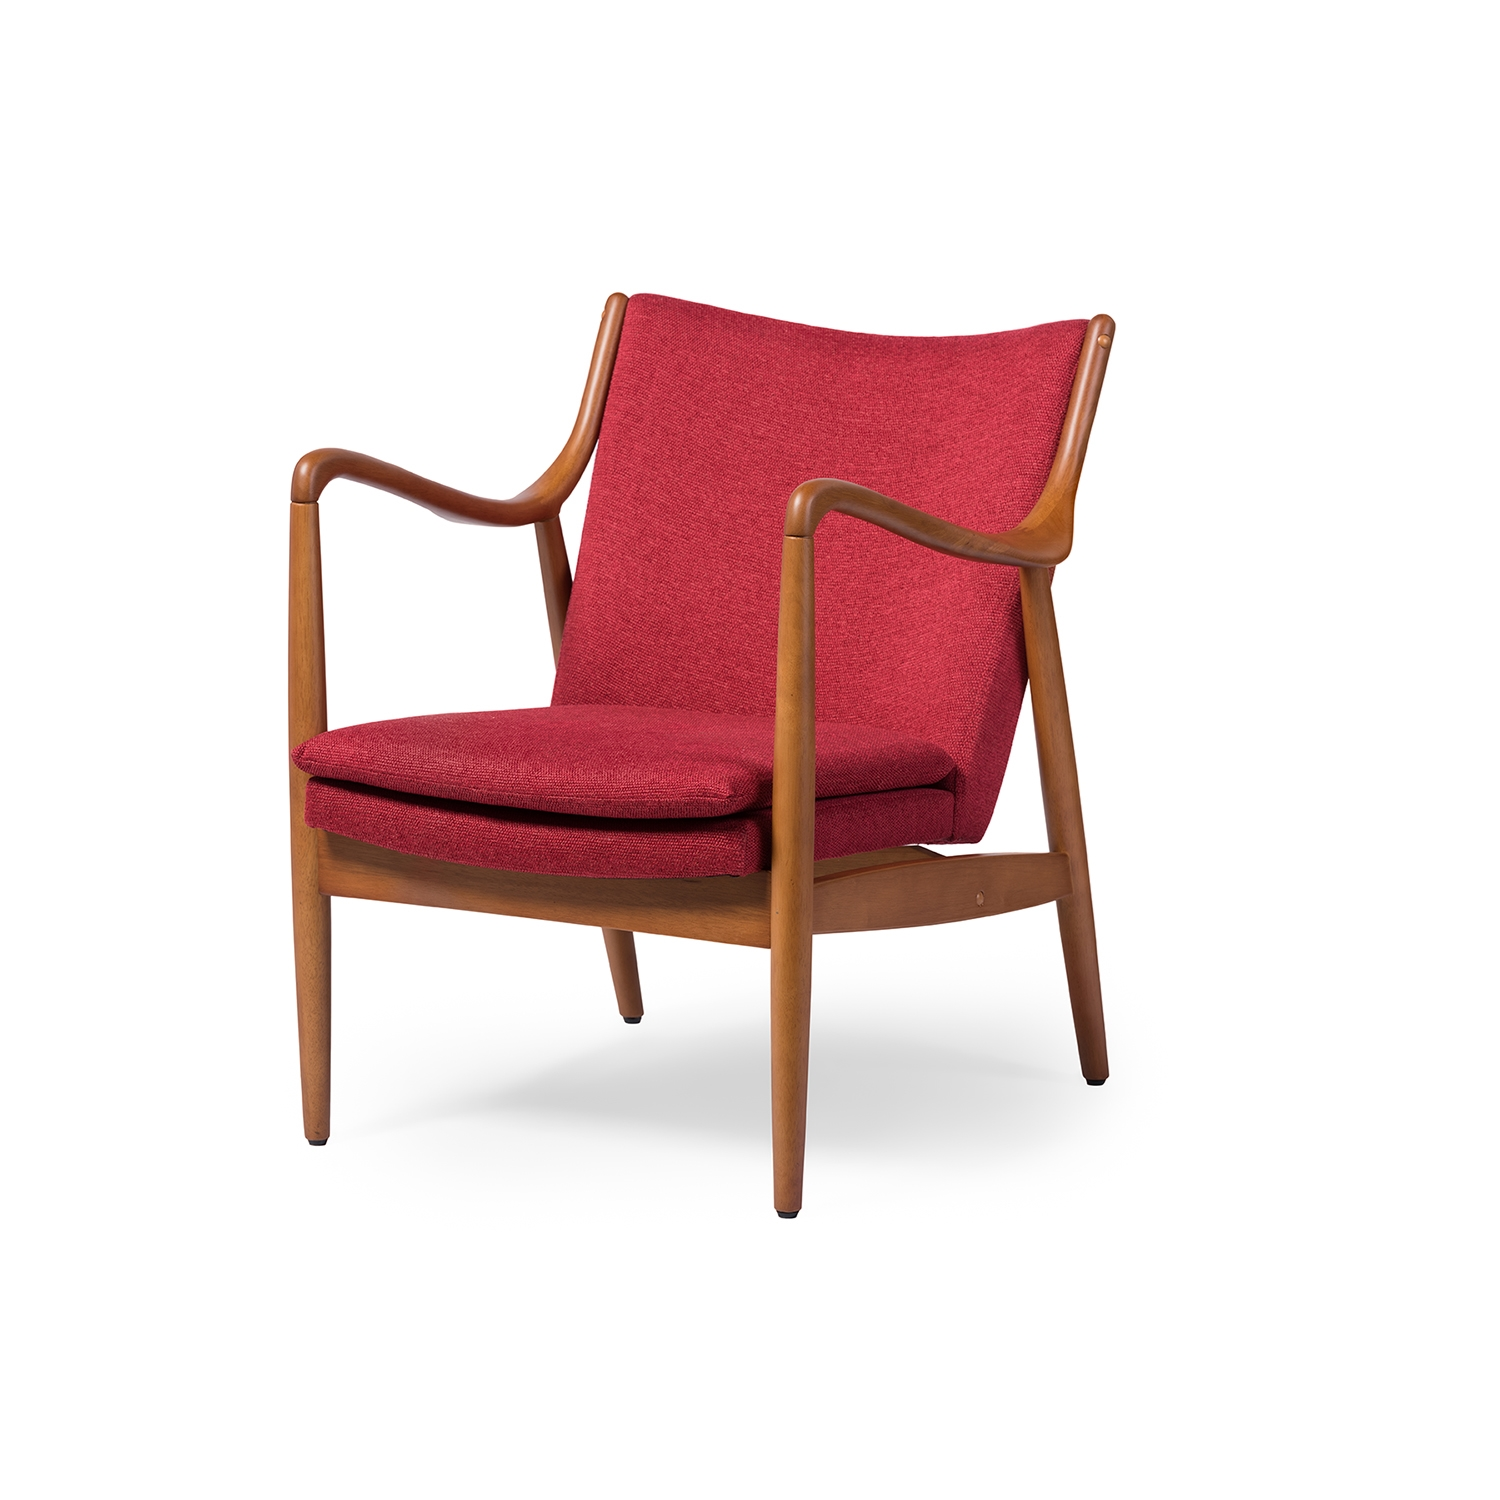 Retro Accent Chairs Baxton Studio Shakespeare Mid Century Modern Retro Red